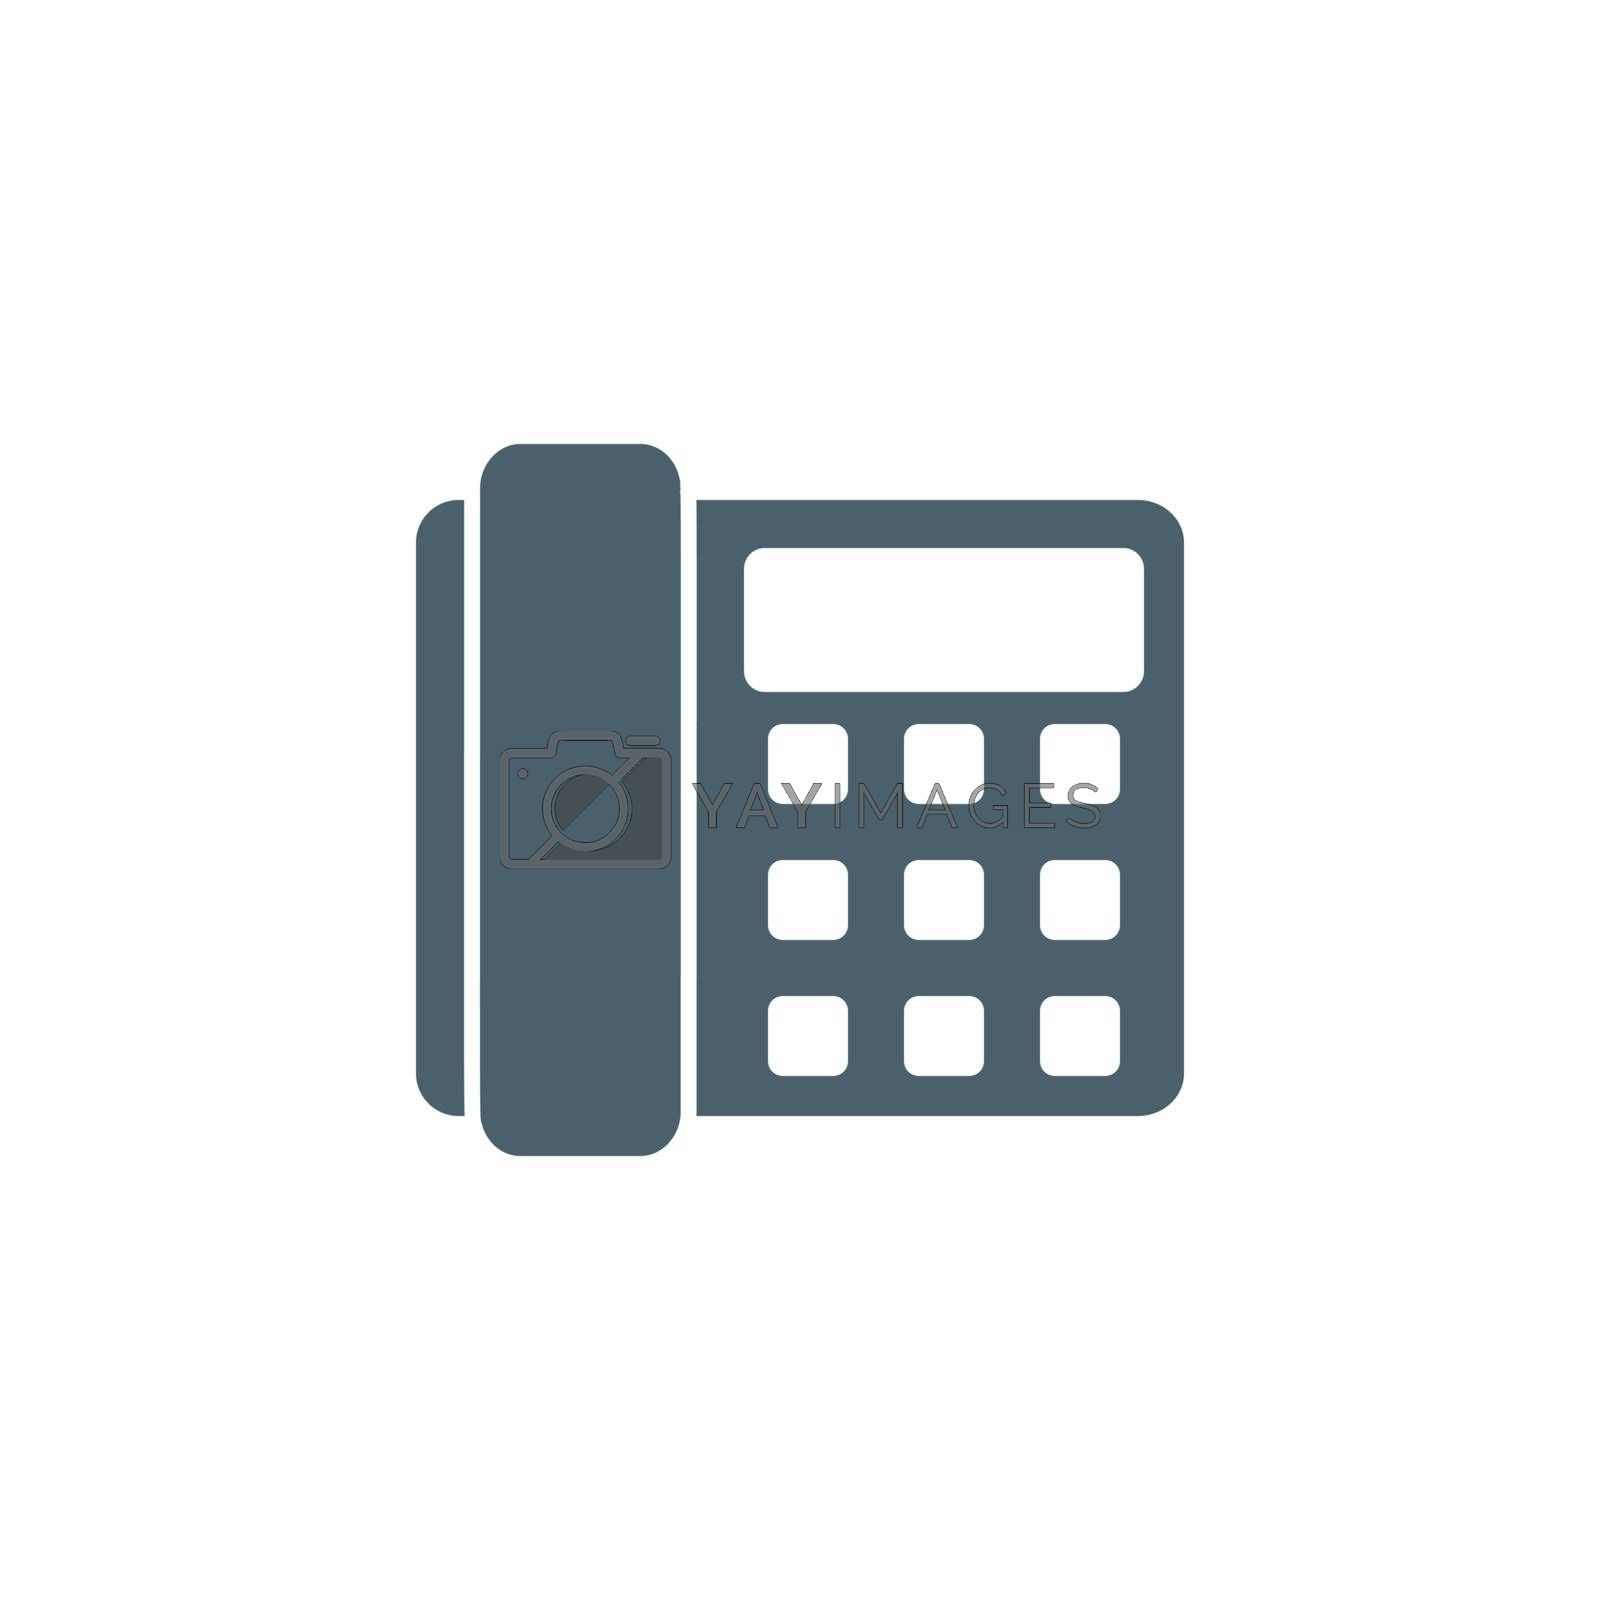 Office Phone related vector glyph icon. Isolated on white background. Vector illustration.